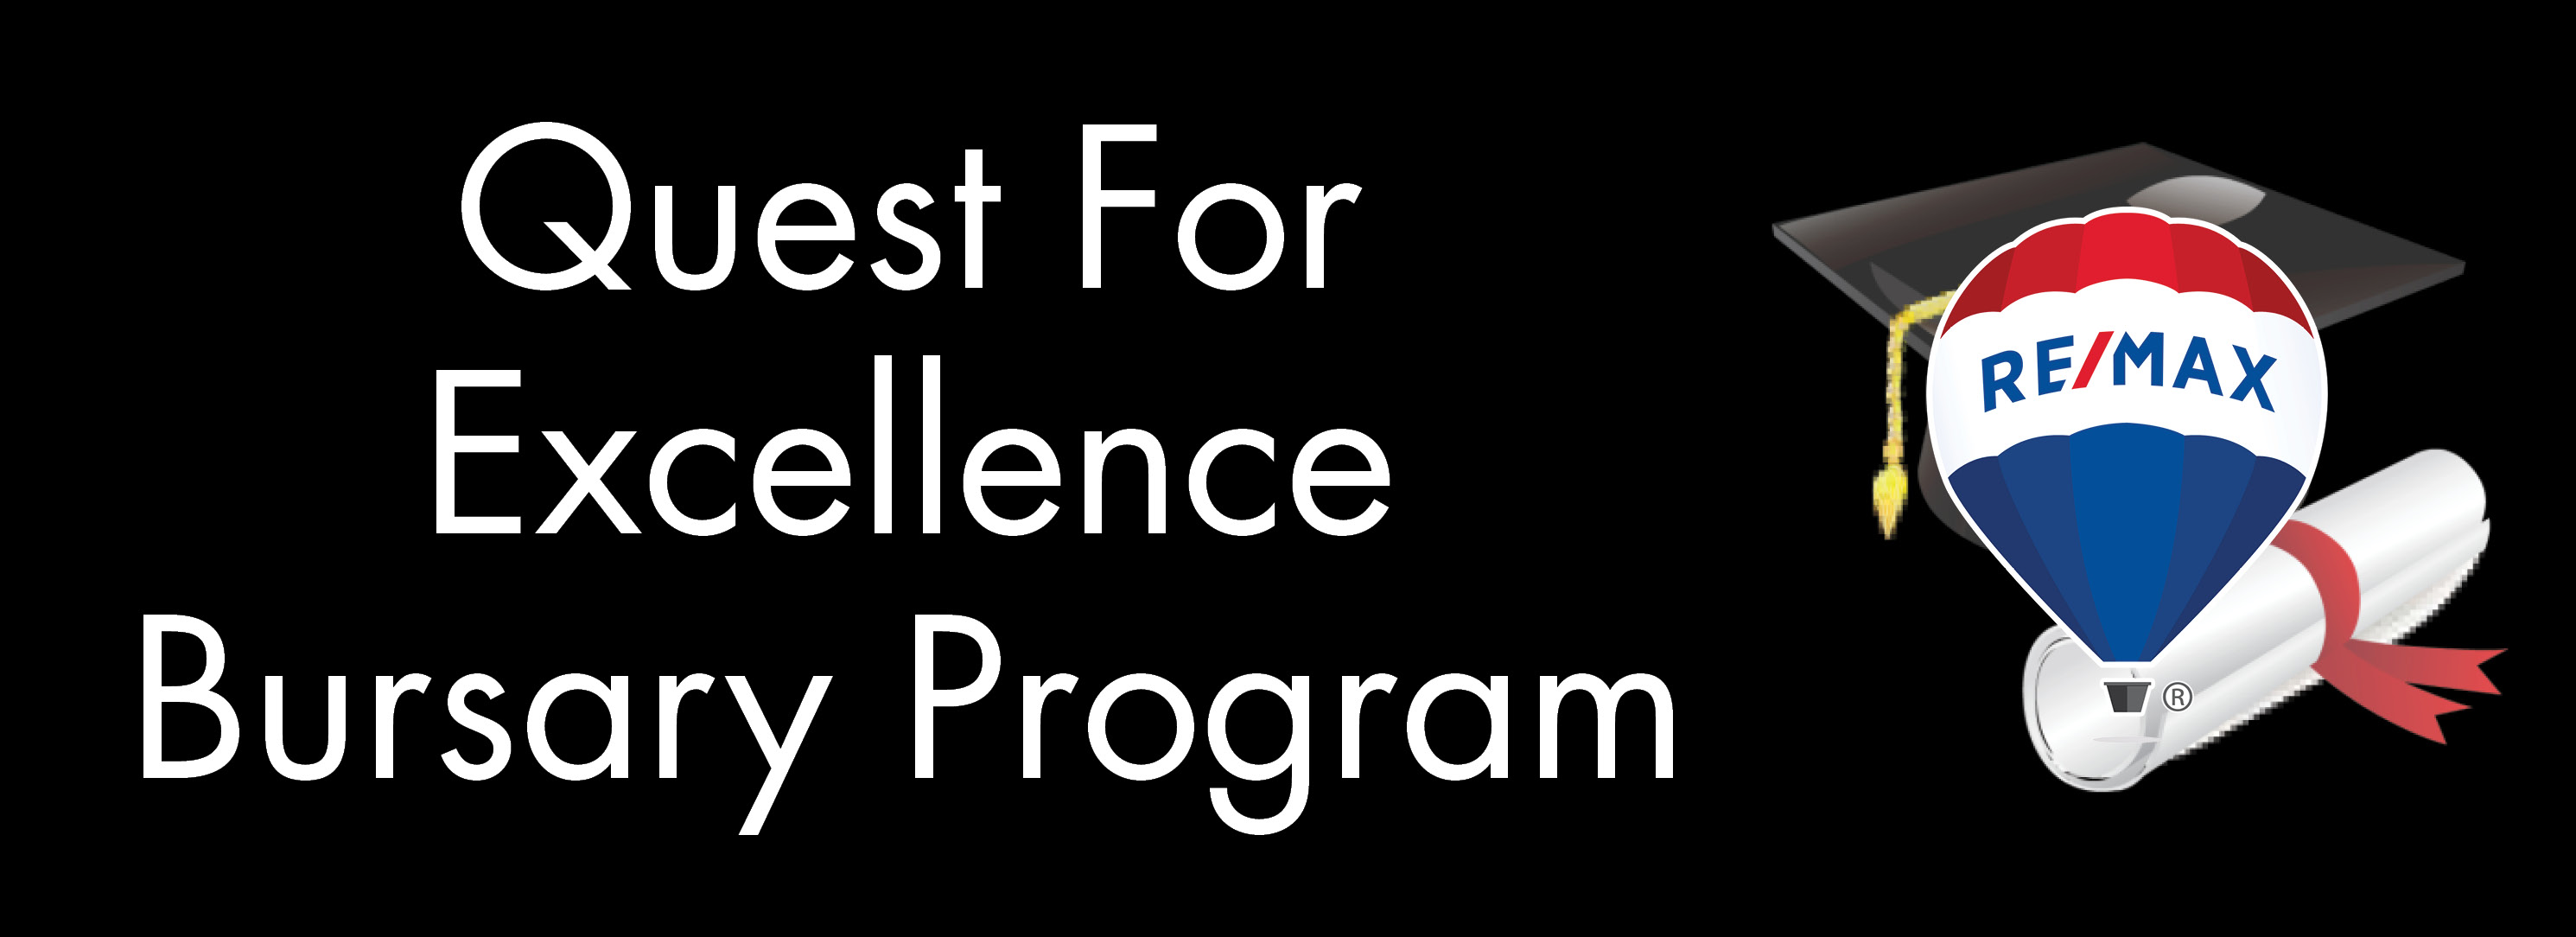 WEBIMAGES: Quest For Excellence Buttonnew.jpg